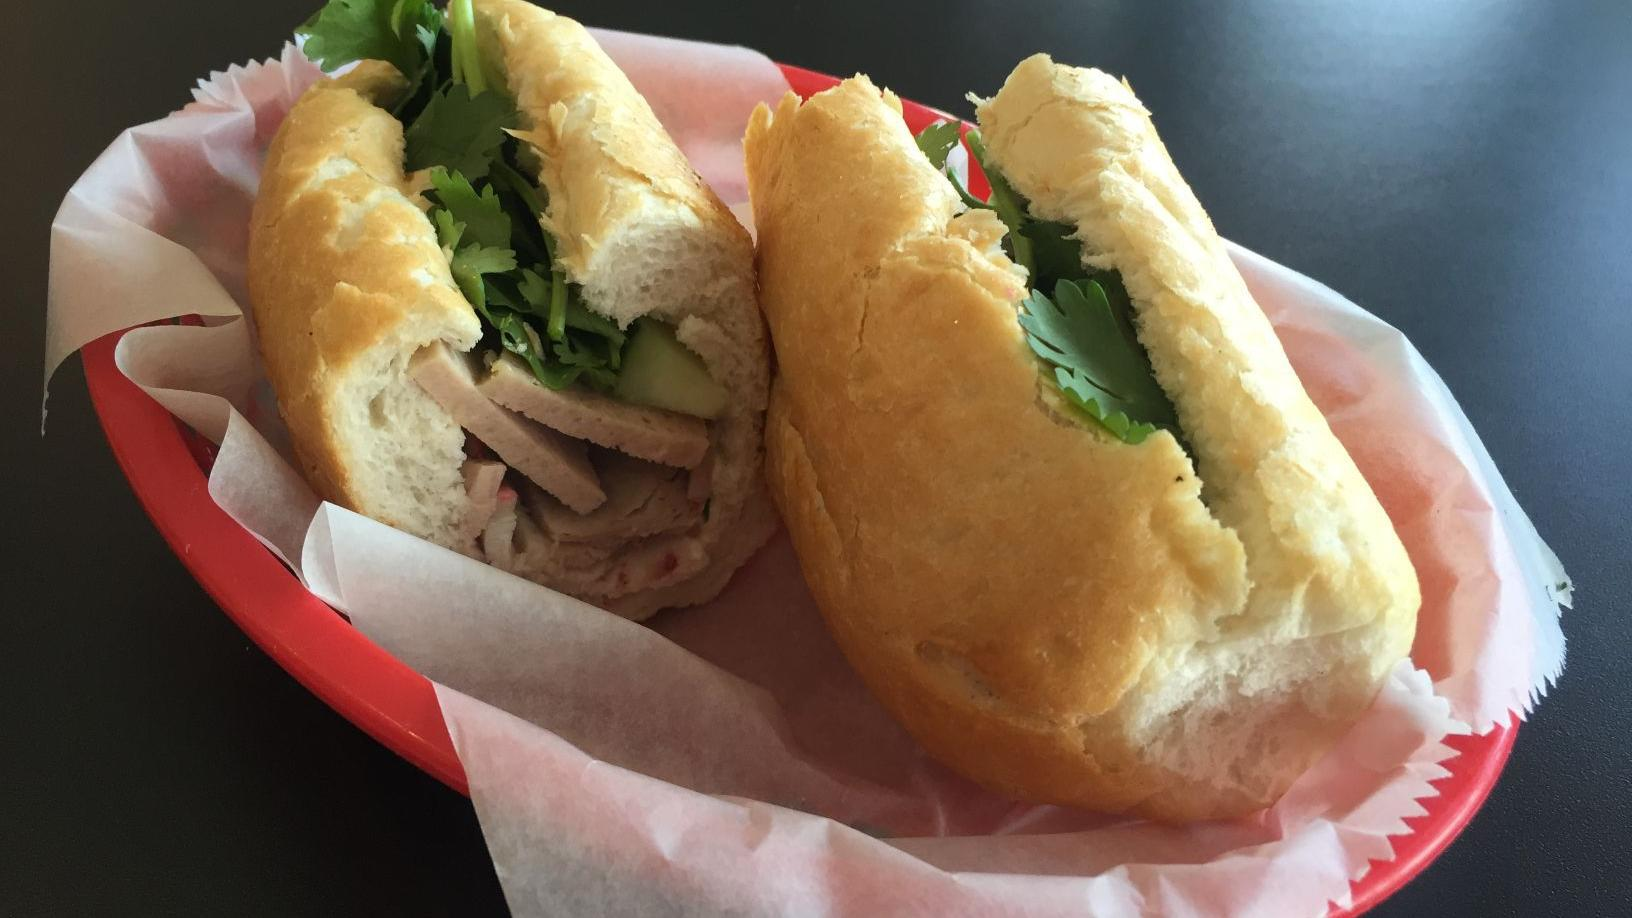 TASTE TEST: Banh mi at Saigon Noodles House